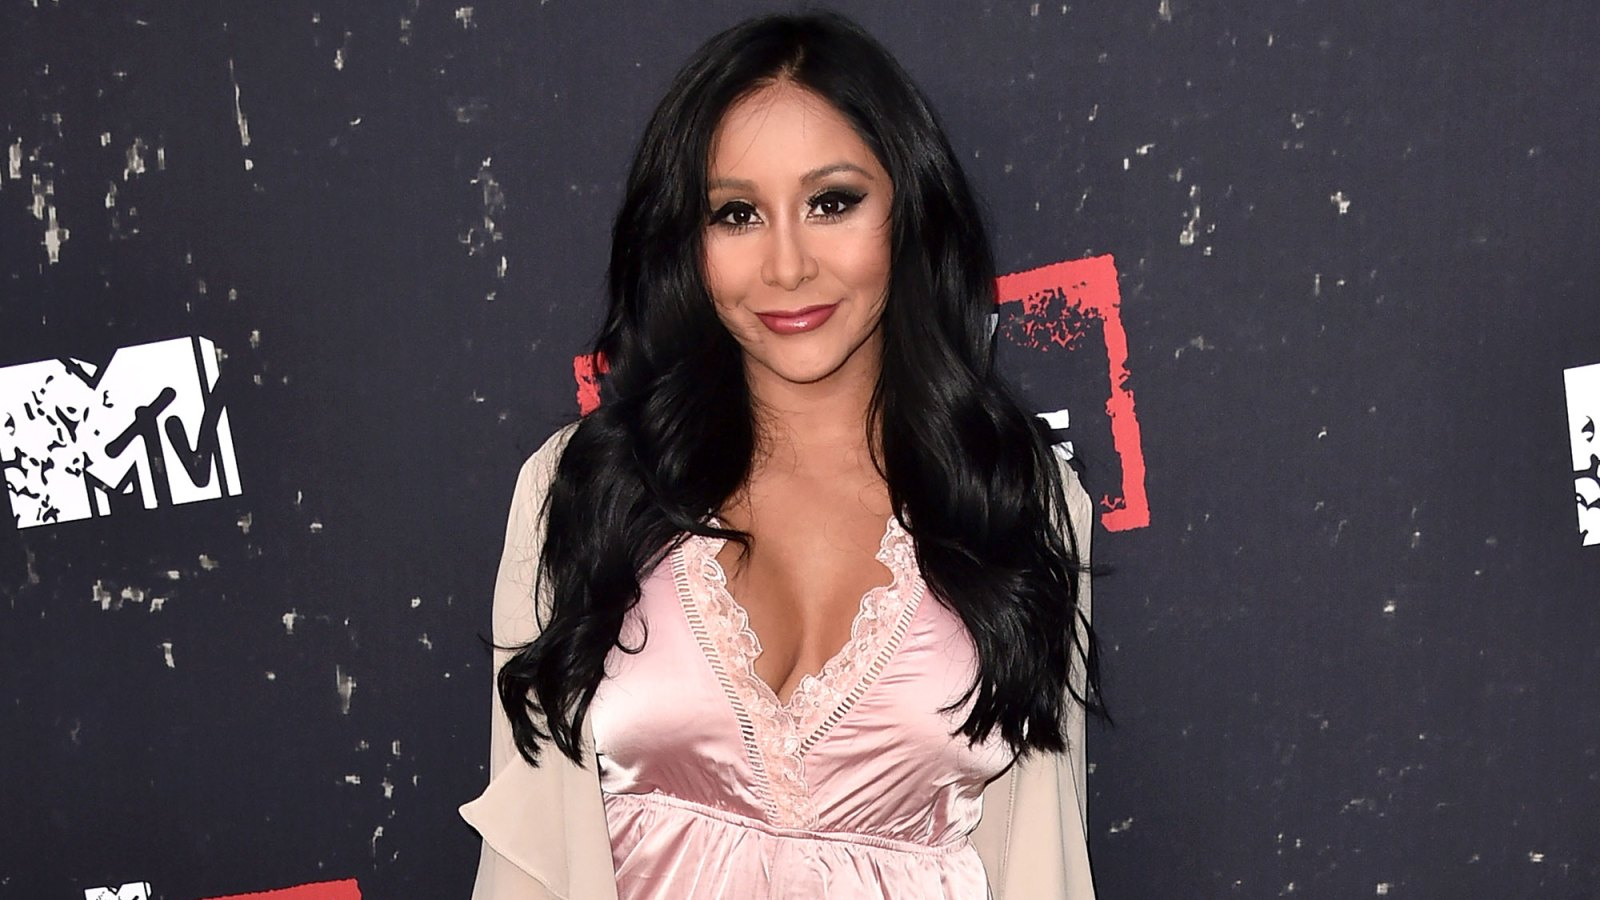 70891bba070 Snooki Shows Off Post-Baby Bikini Body 2 Weeks After Giving Birth: 'Still  Wearing My Diaper'